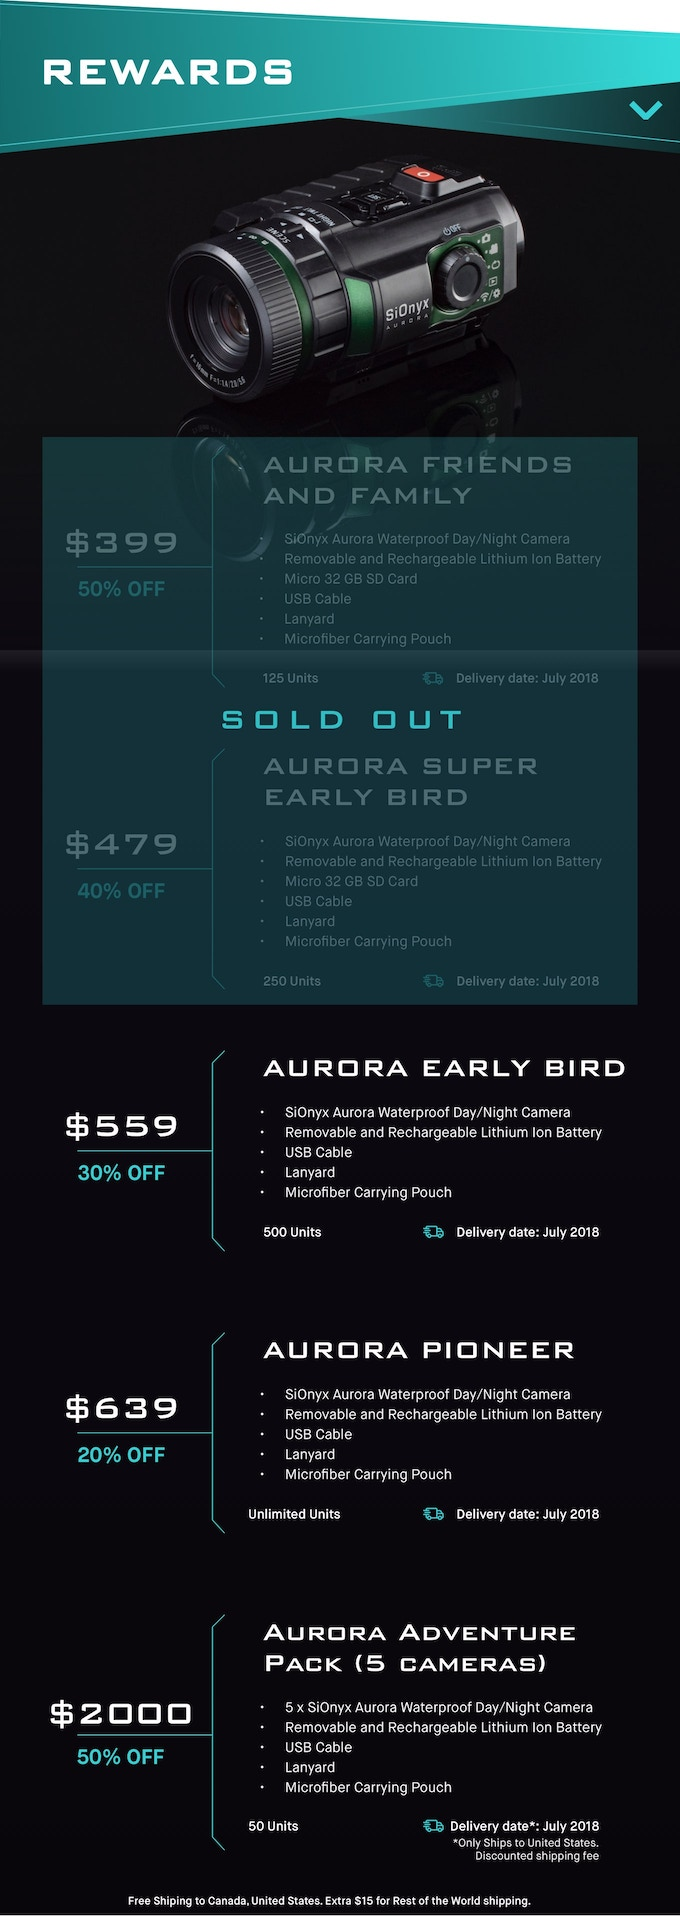 Aurora Worlds 1st Day Night Camera With True Vision By U S Soldiers Develop High Tech Gadget For Better Mr Saylors Career Spans More Than 20 Years Of Emerging Technology Design Development And Commercialization In A Range Imaging Markets